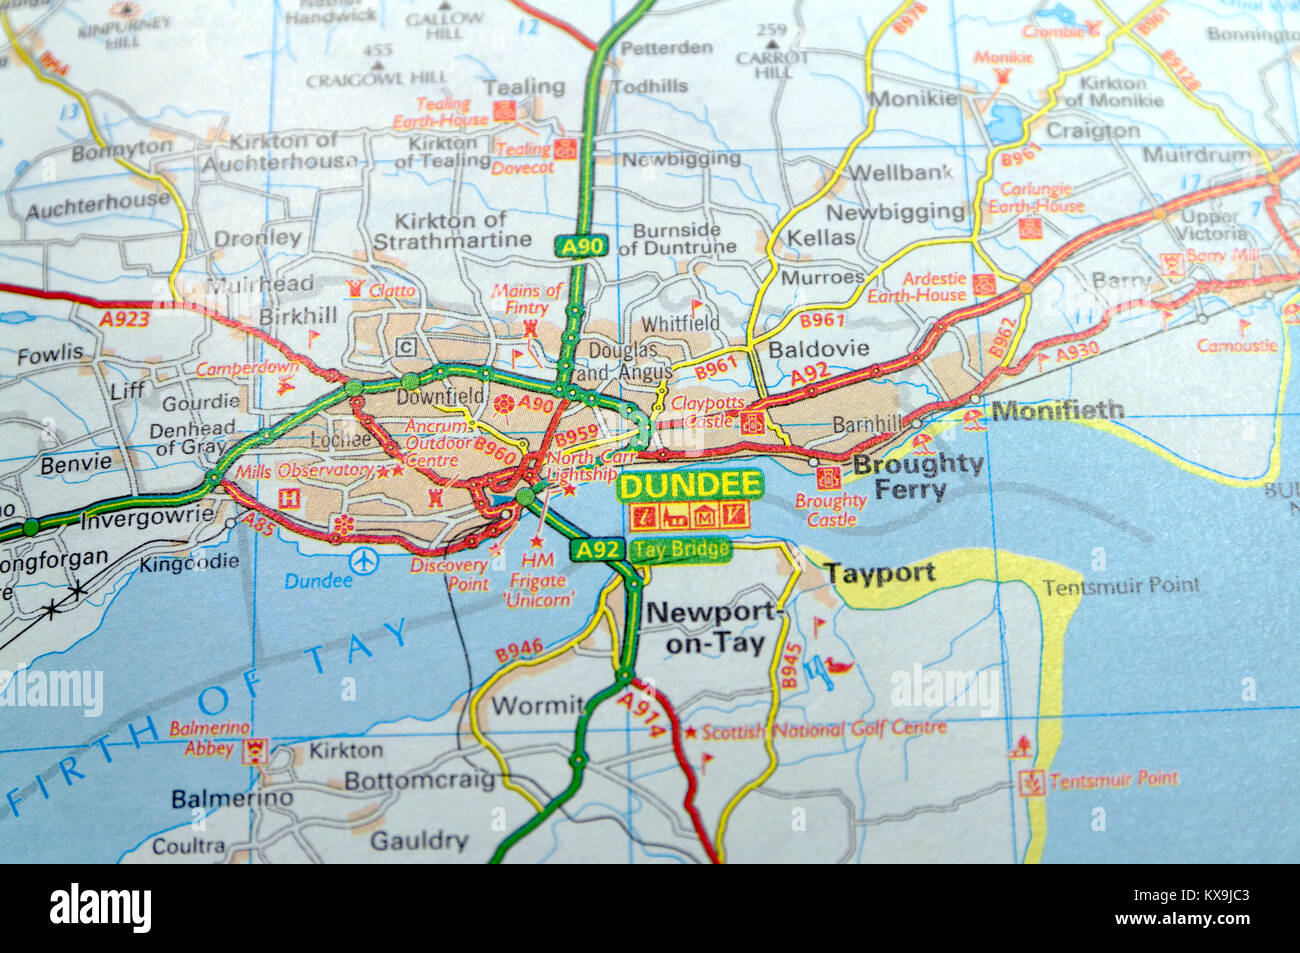 Road Map of Dundee, Scotland Stock Photo: 171086387 - Alamy Dundee Scotland Map on